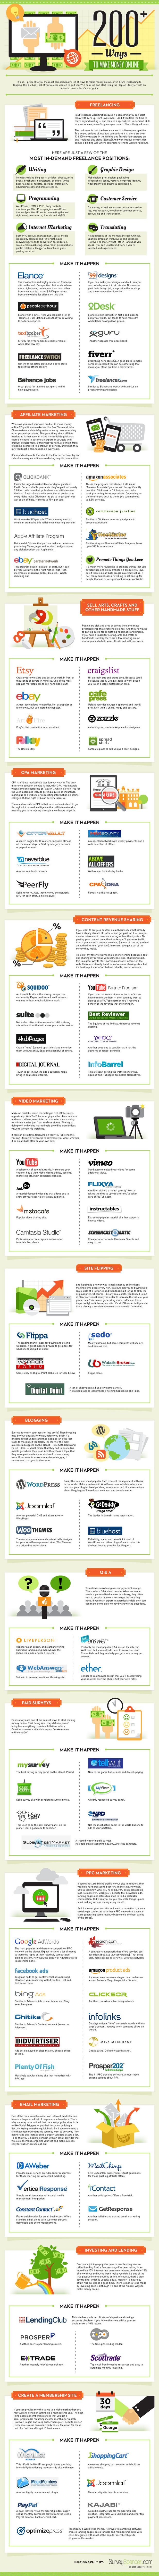 200 ways to make money online - #infographic